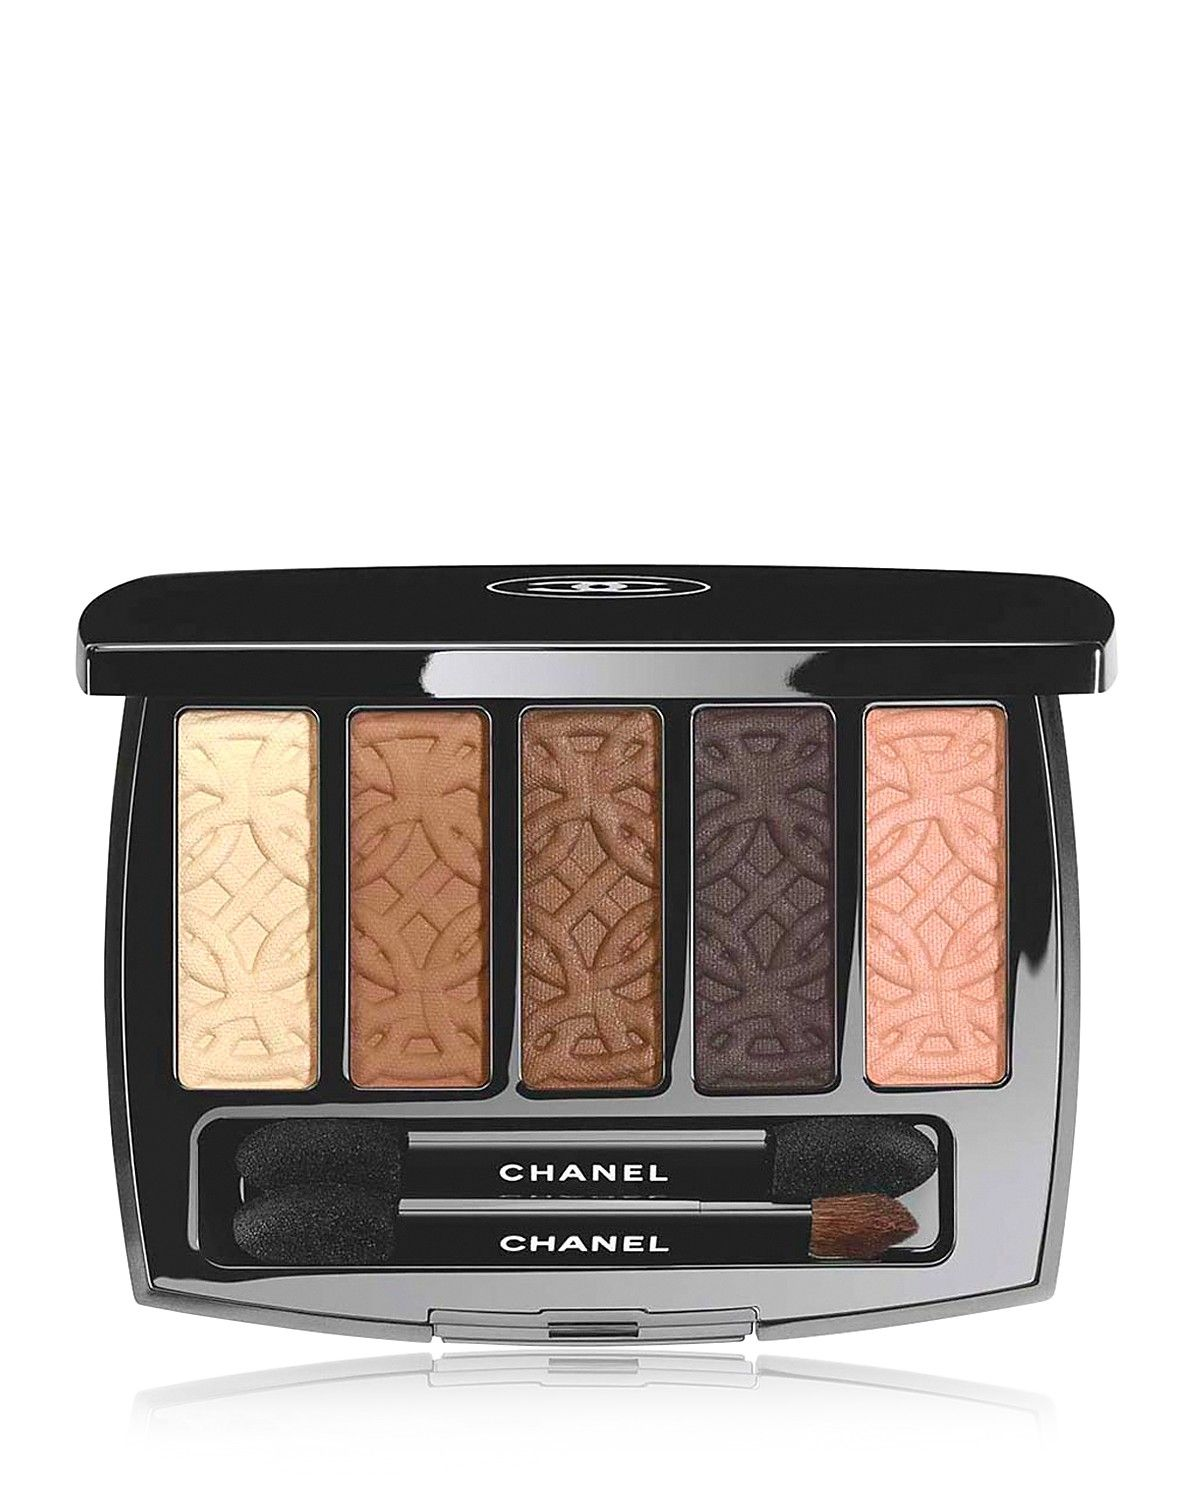 0538b4b57b59 CHANEL LES 5 OMBRES DE CHANEL Eyeshadow Palette in Entrelacs Limited  Edition, $80. Fall Colour Collection | New at Bloomingdale's